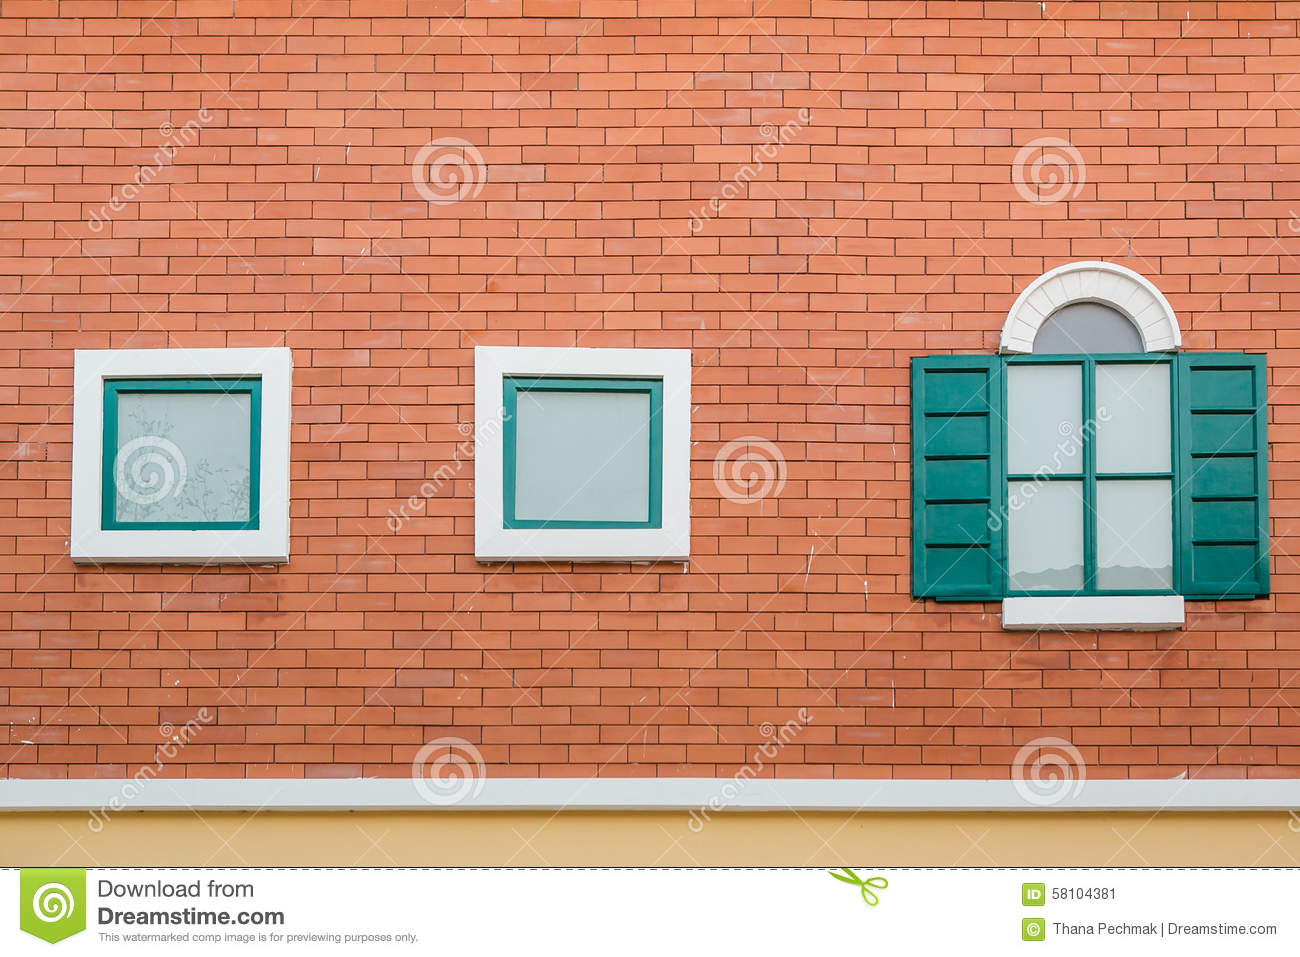 White Window On The Orange Brick Wall Stock Photo - Image: 58104381